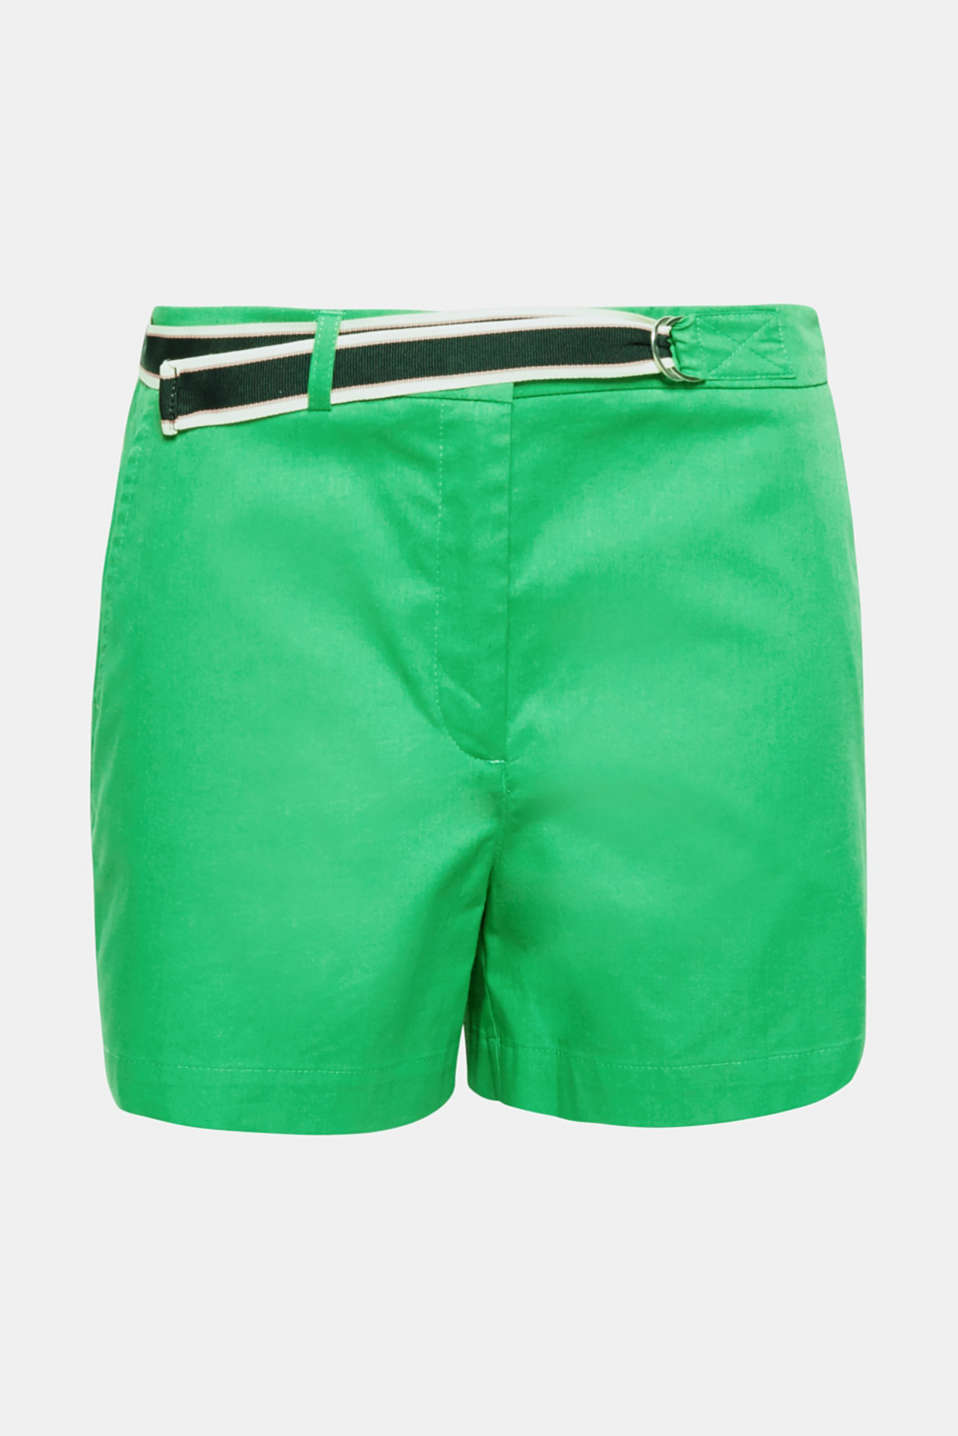 Shorts are cool and now come with great details! This pair has an asymmetrically fixed woven tape belt and side hem slits.